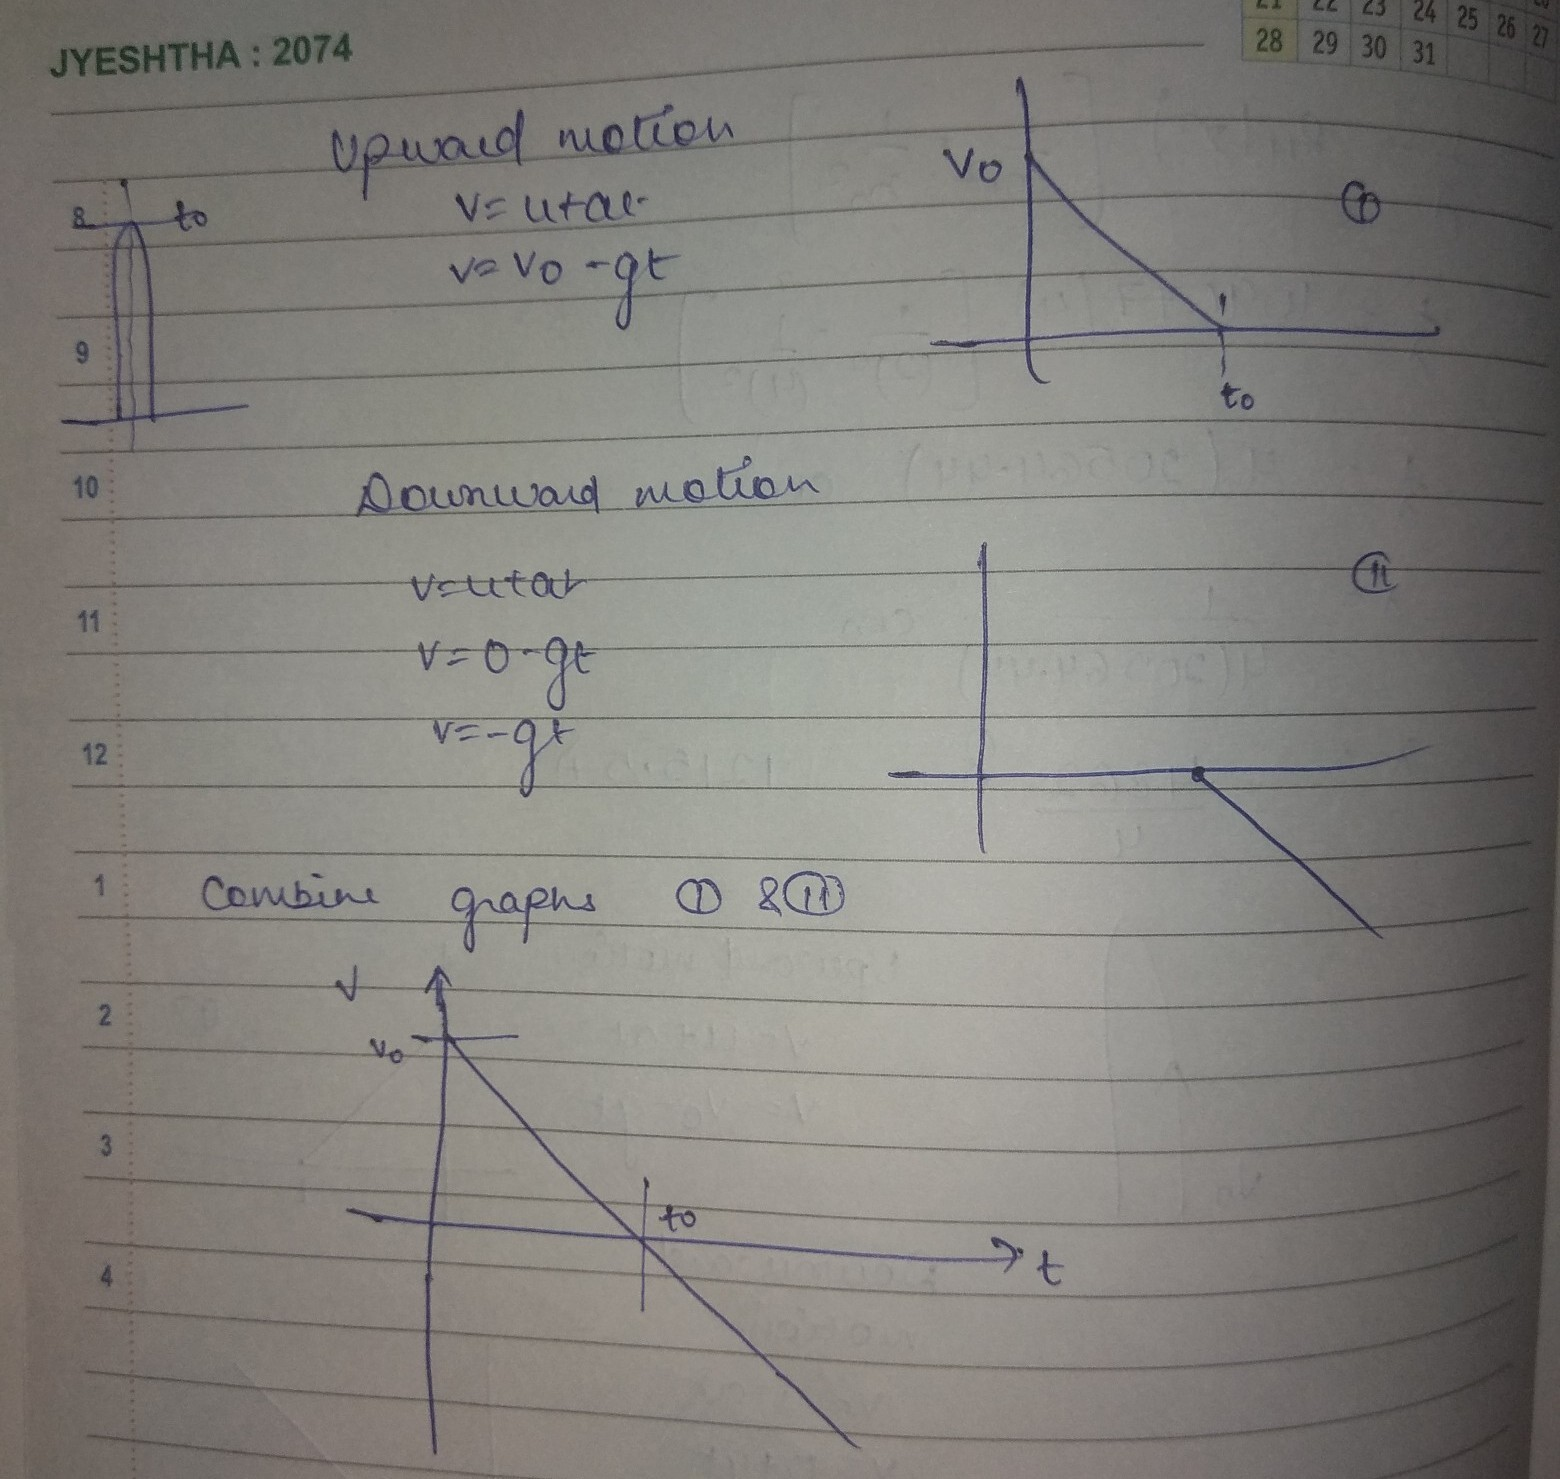 Draw Velocity Time Graph For An Object Projected Upward